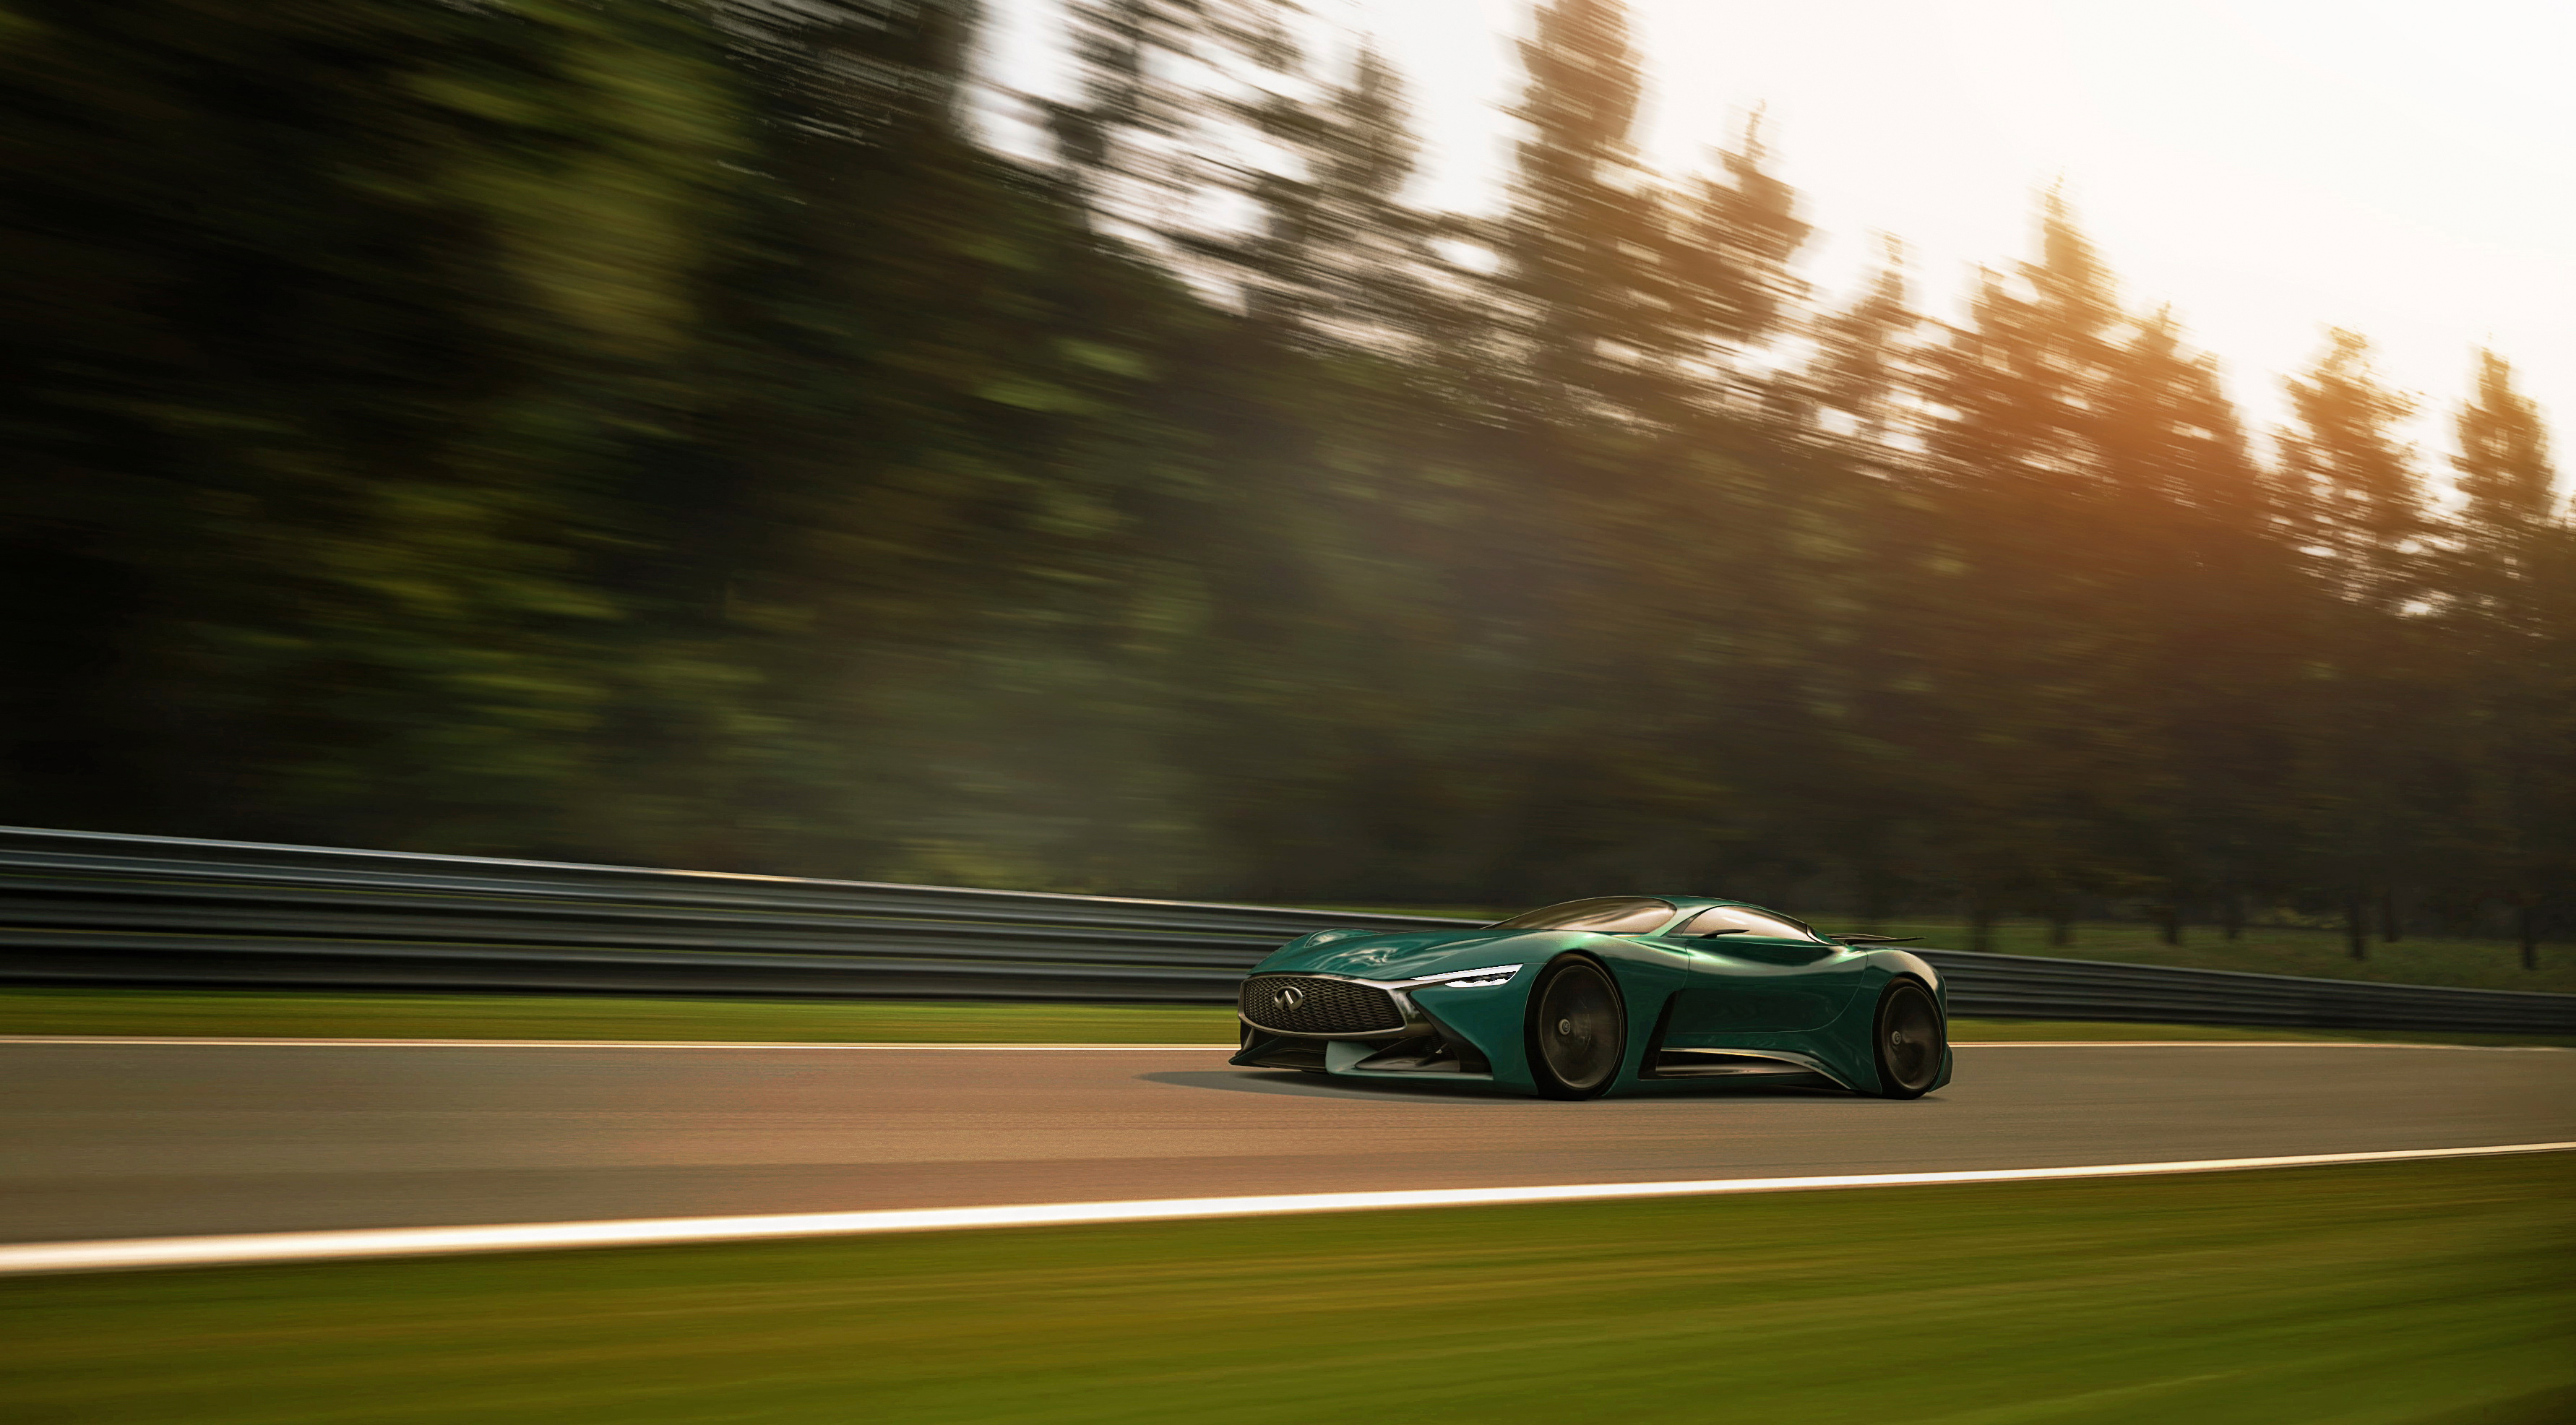 146018 download wallpaper Cars, Infiniti, Vision, Gran Turismo, Traffic, Movement, Speed screensavers and pictures for free